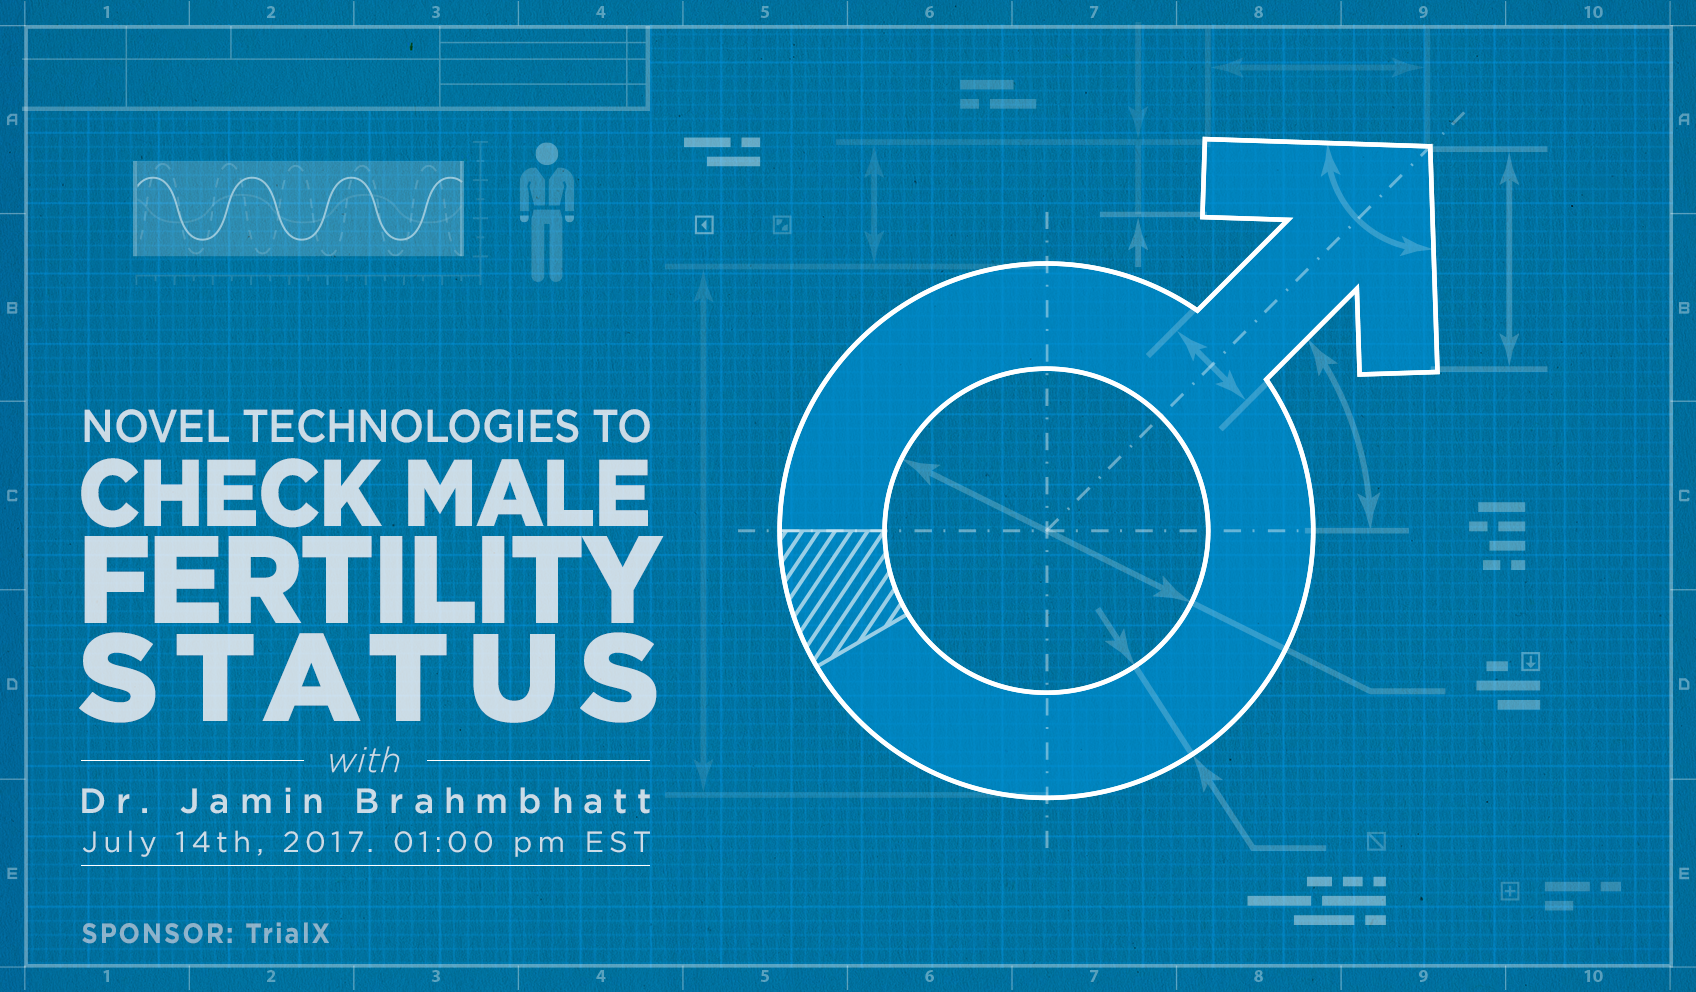 Novel Technologies to Check Male Fertility Status with Dr. Jamin Brahmbhatt